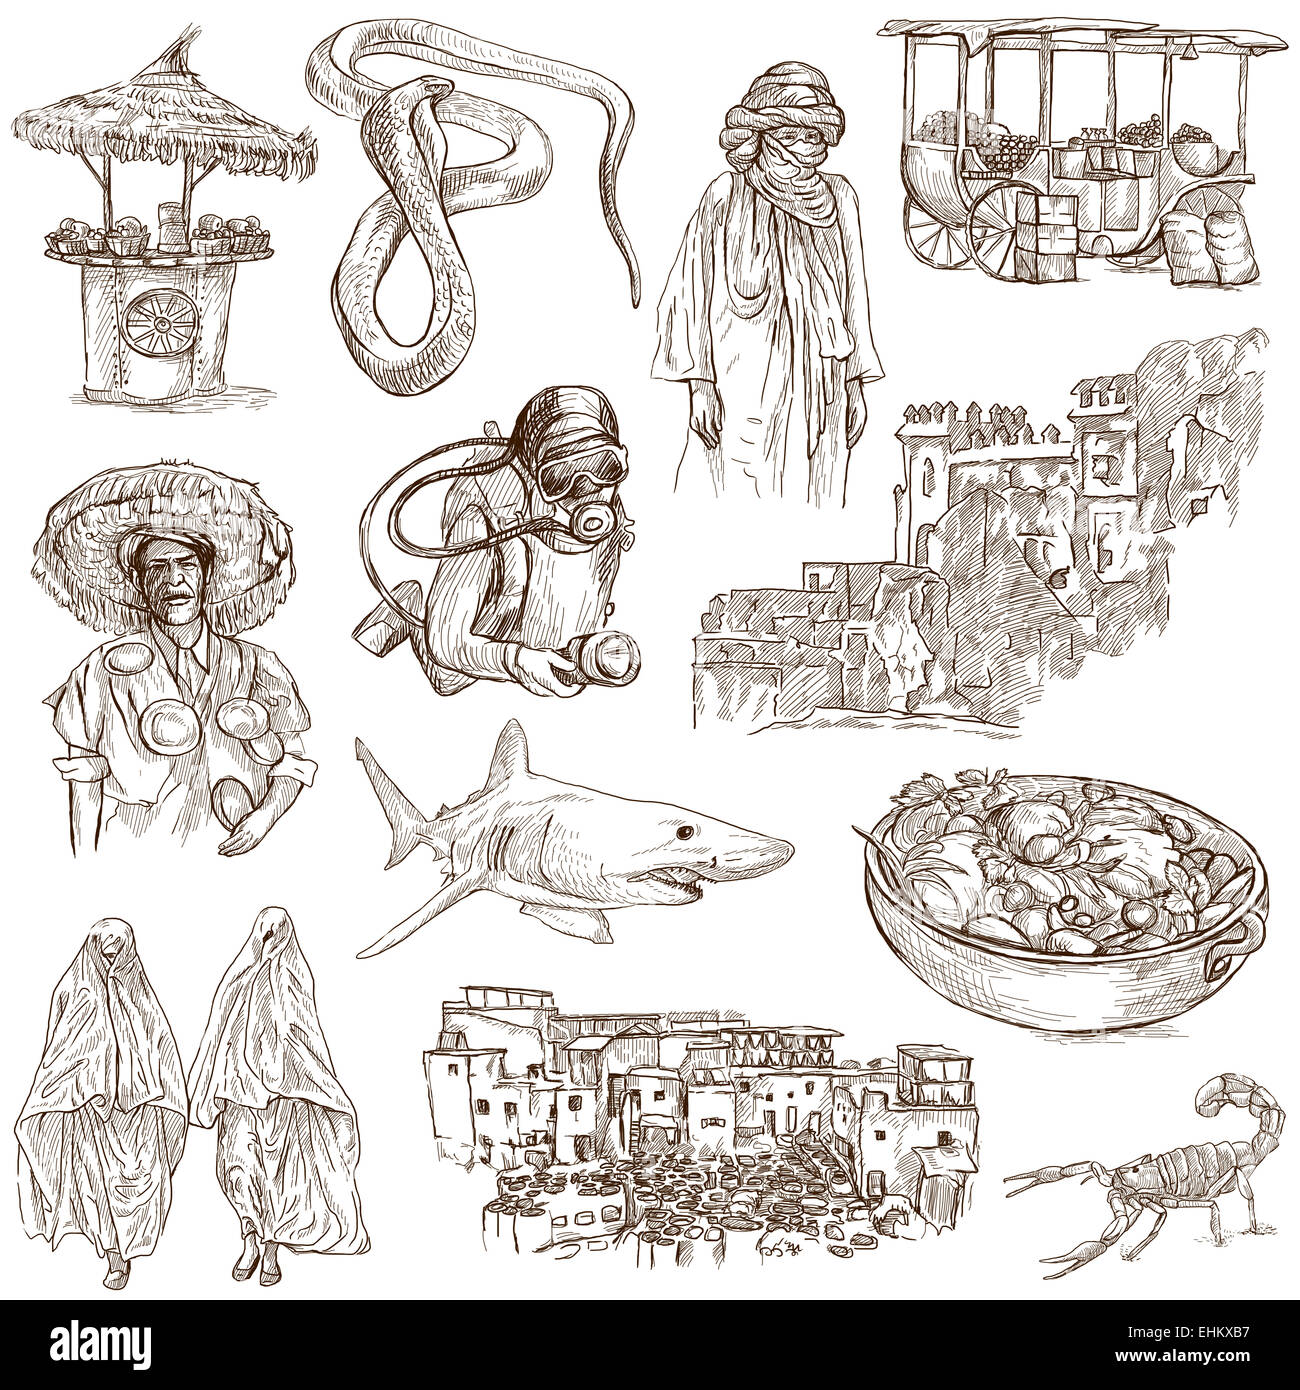 Travel series: MOROCCO - Collection of an hand drawn illustrations. Description: Full sized hand drawn illustrations, - Stock Image